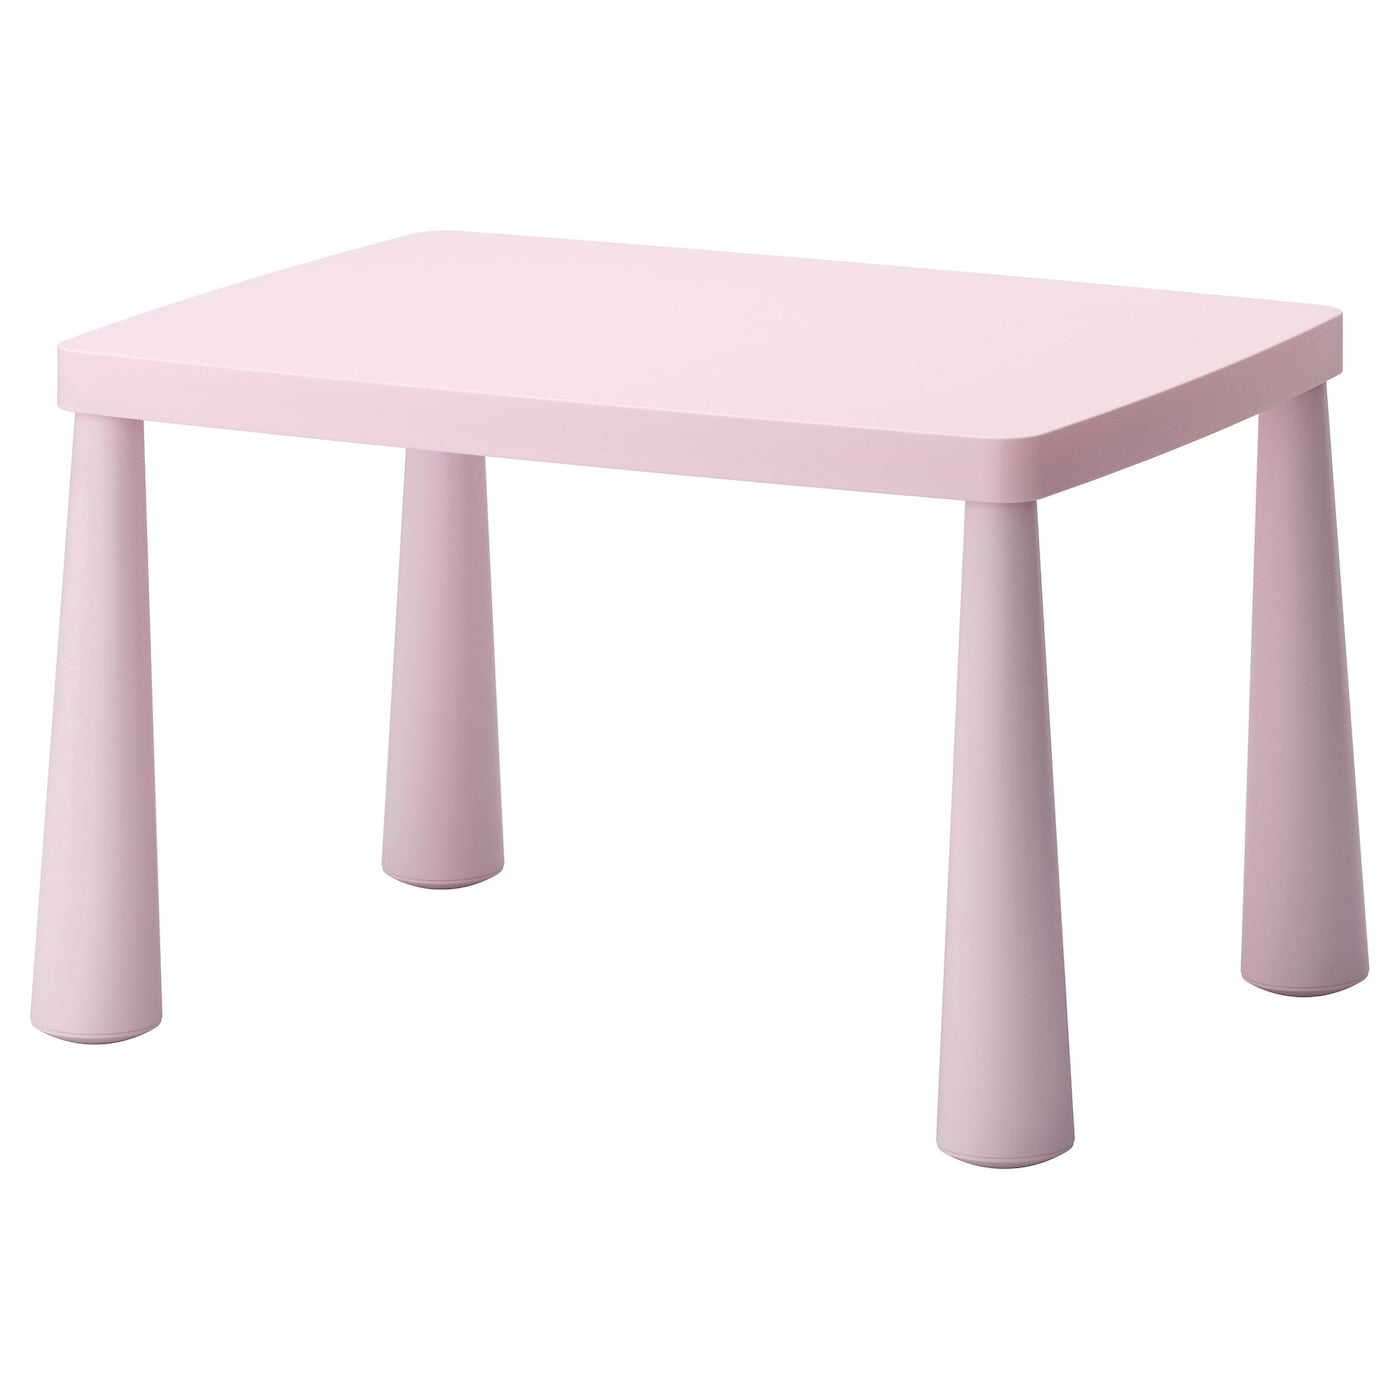 Mammut children 39 s table in outdoor light pink 77x55 cm ikea - Table chaises enfants ...